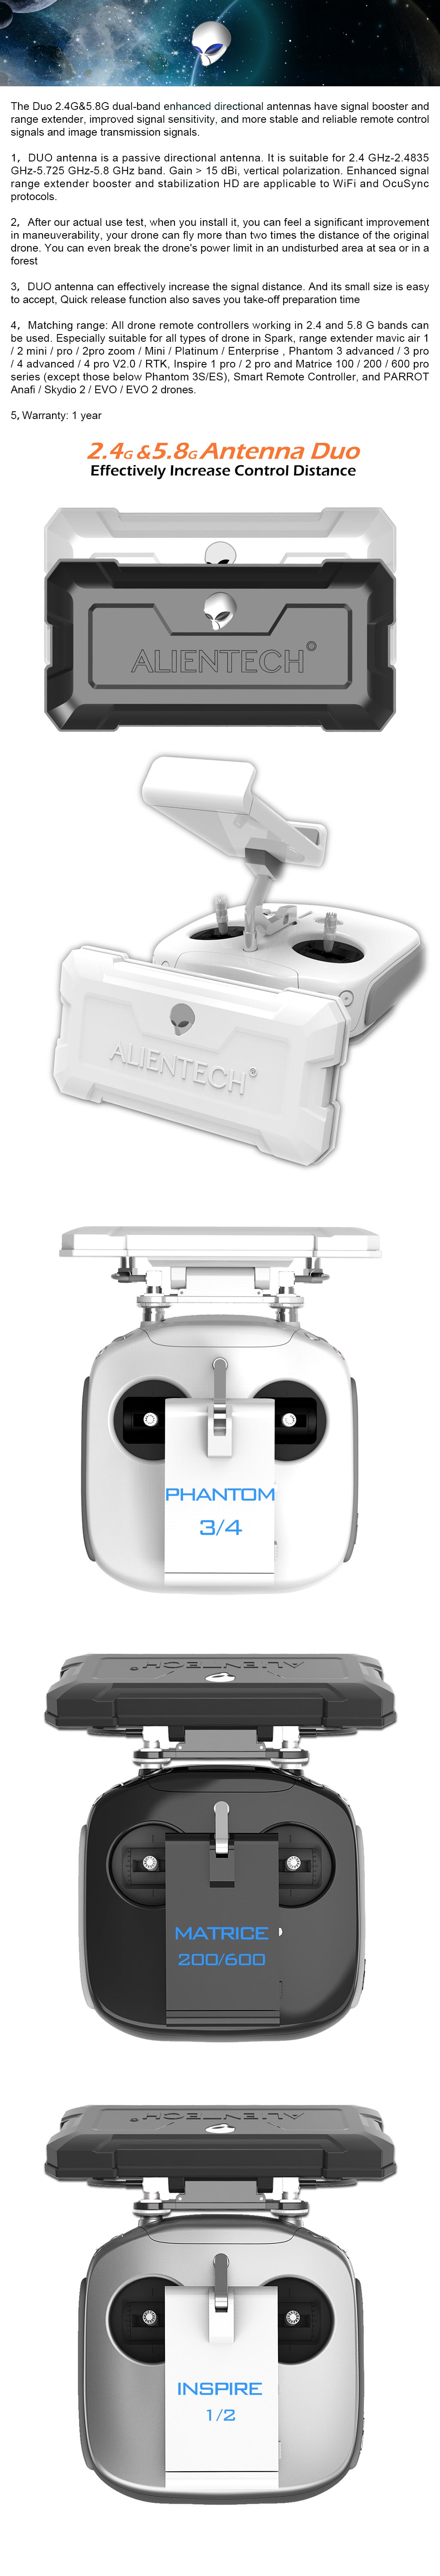 ALIENTECH DUO antenna for phantom inspire drones